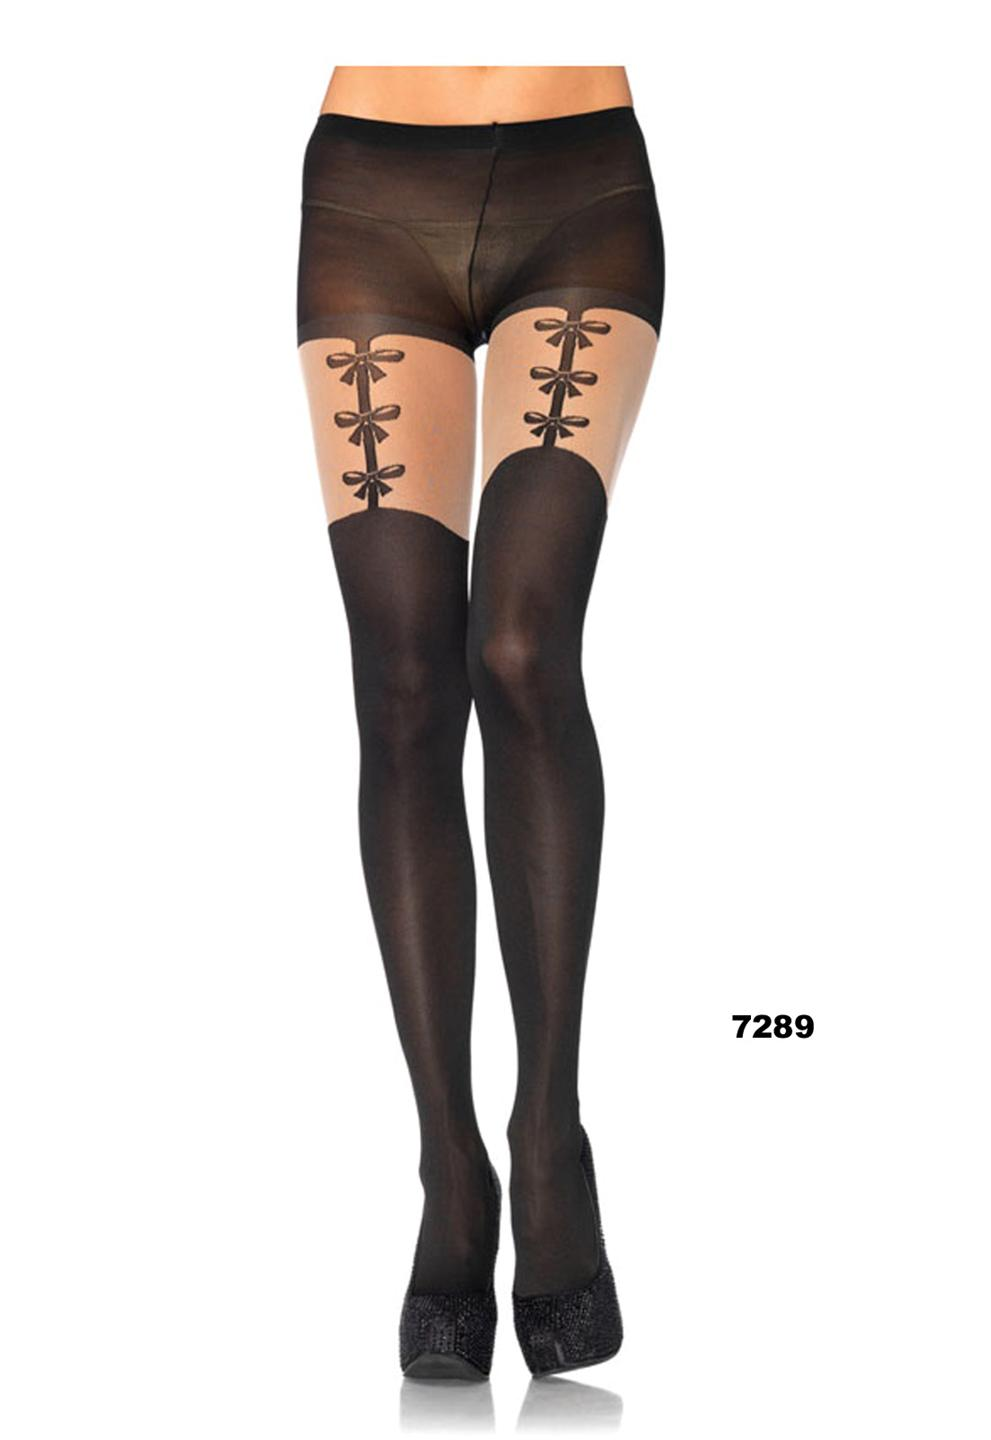 Pantyhose Deluxe 7